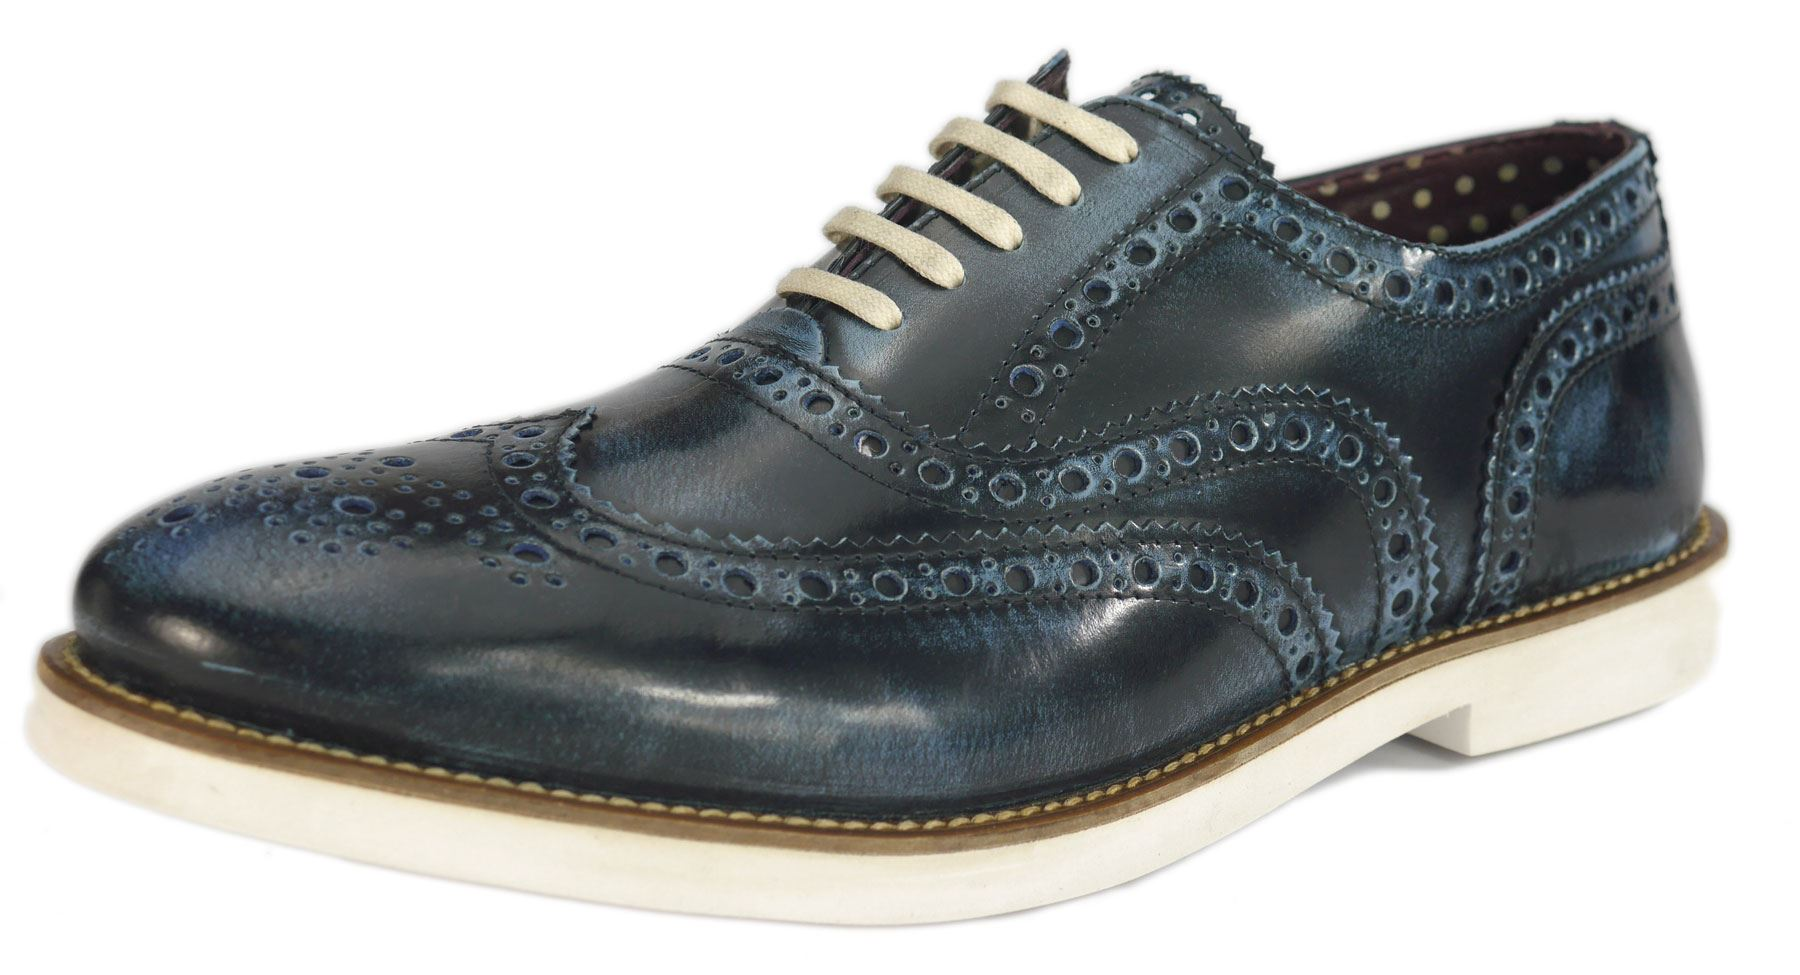 London Brogues Farnham  Herren Leder Lace Up Casual Formal Formal Formal Contrast Schuhes f0679e